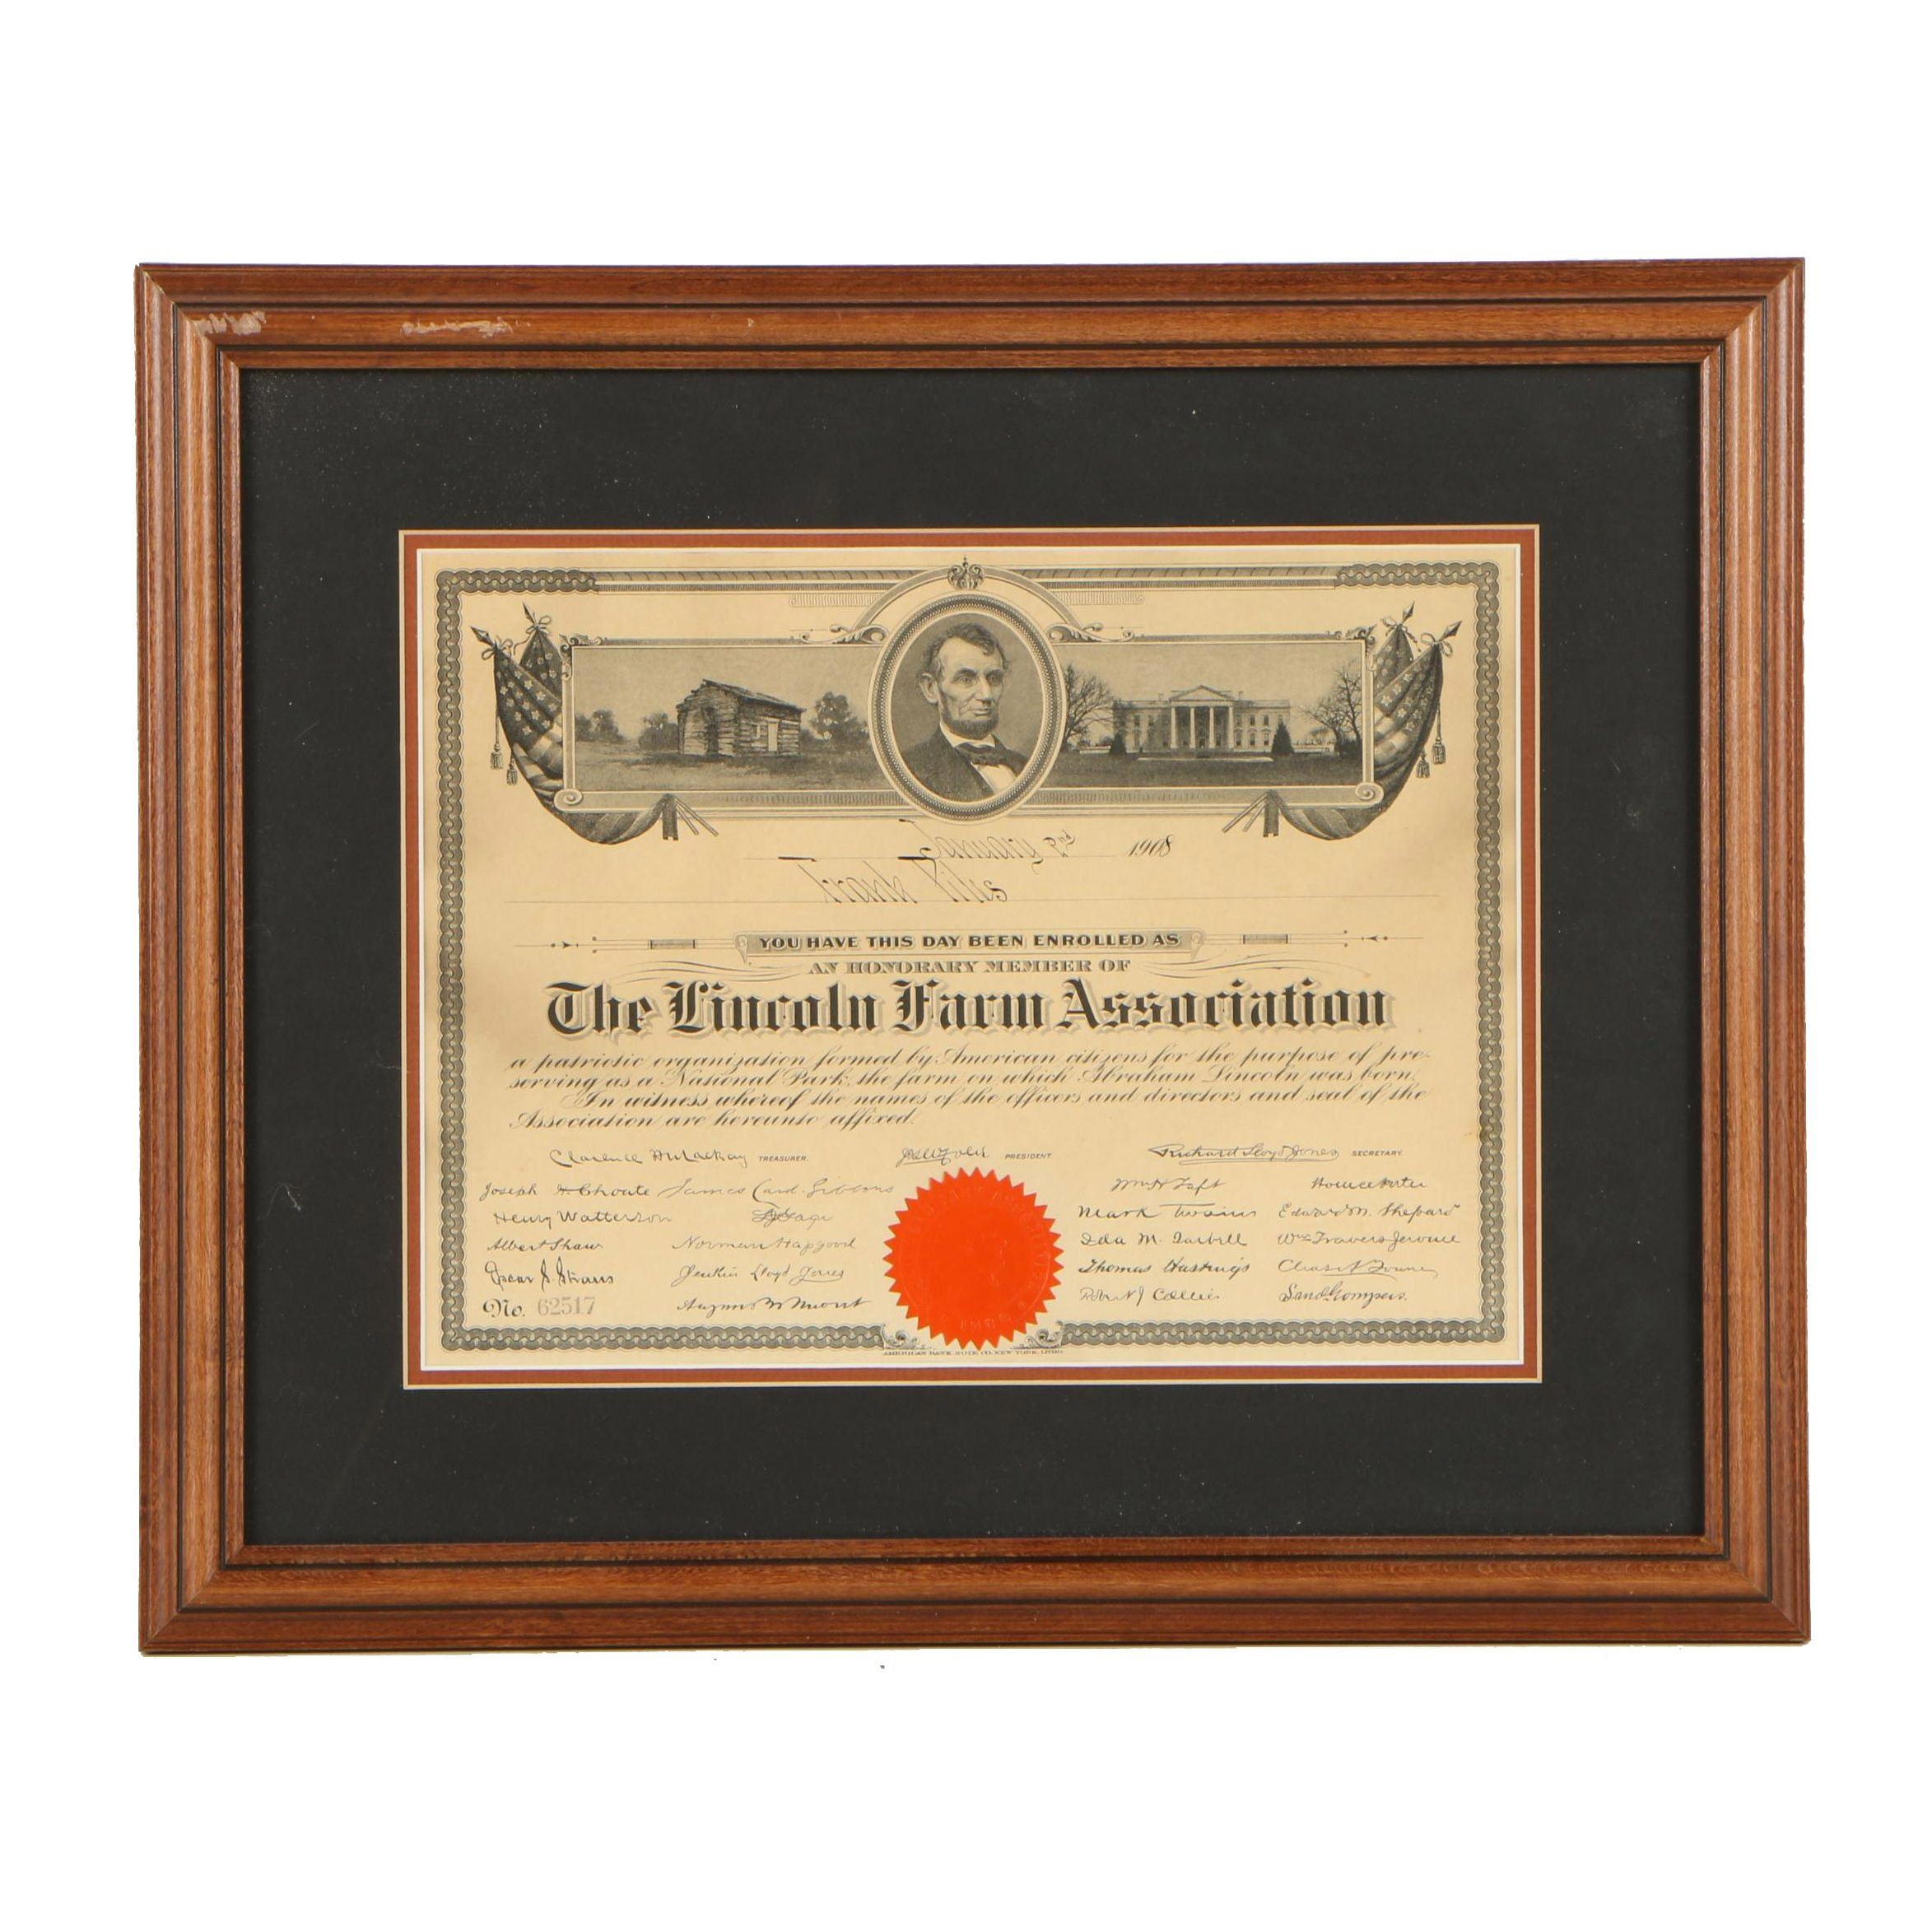 1908 Certificate of Honorary Membership to the Lincoln Farm Association